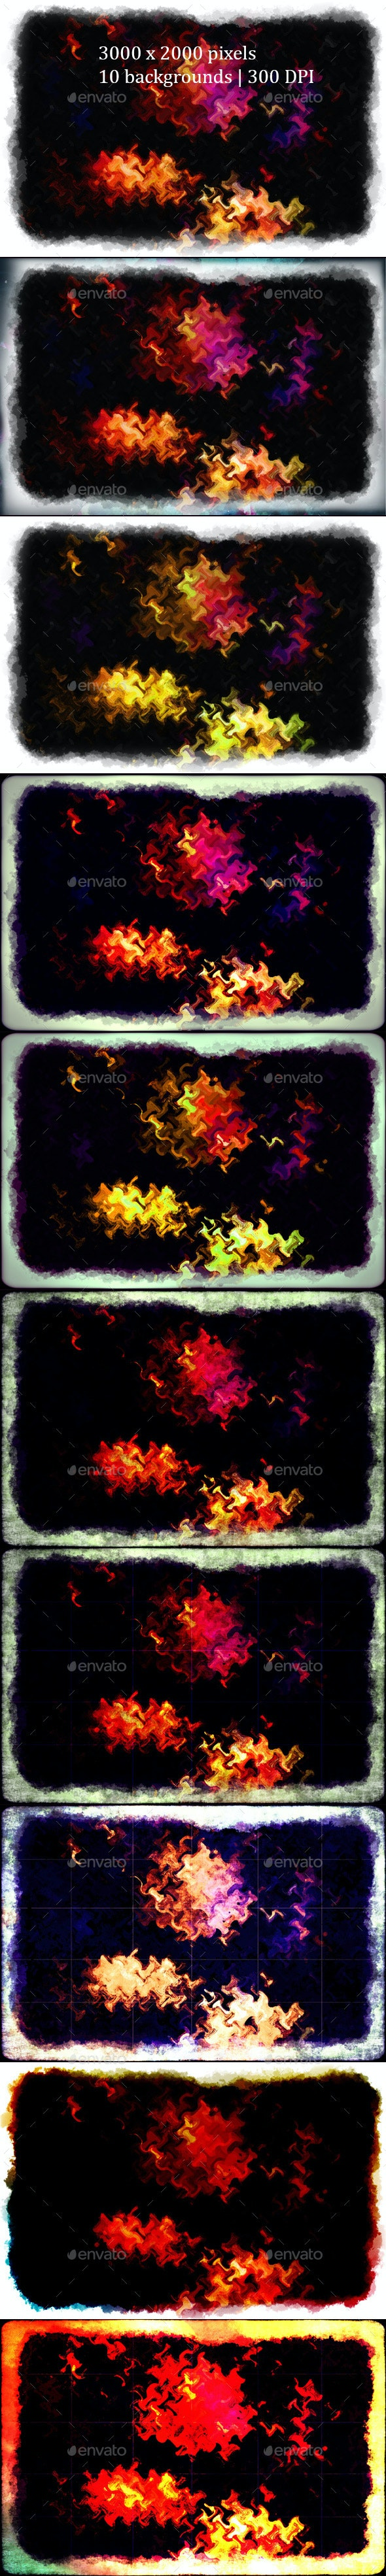 Grunge Abstract Backgrounds - Abstract Backgrounds